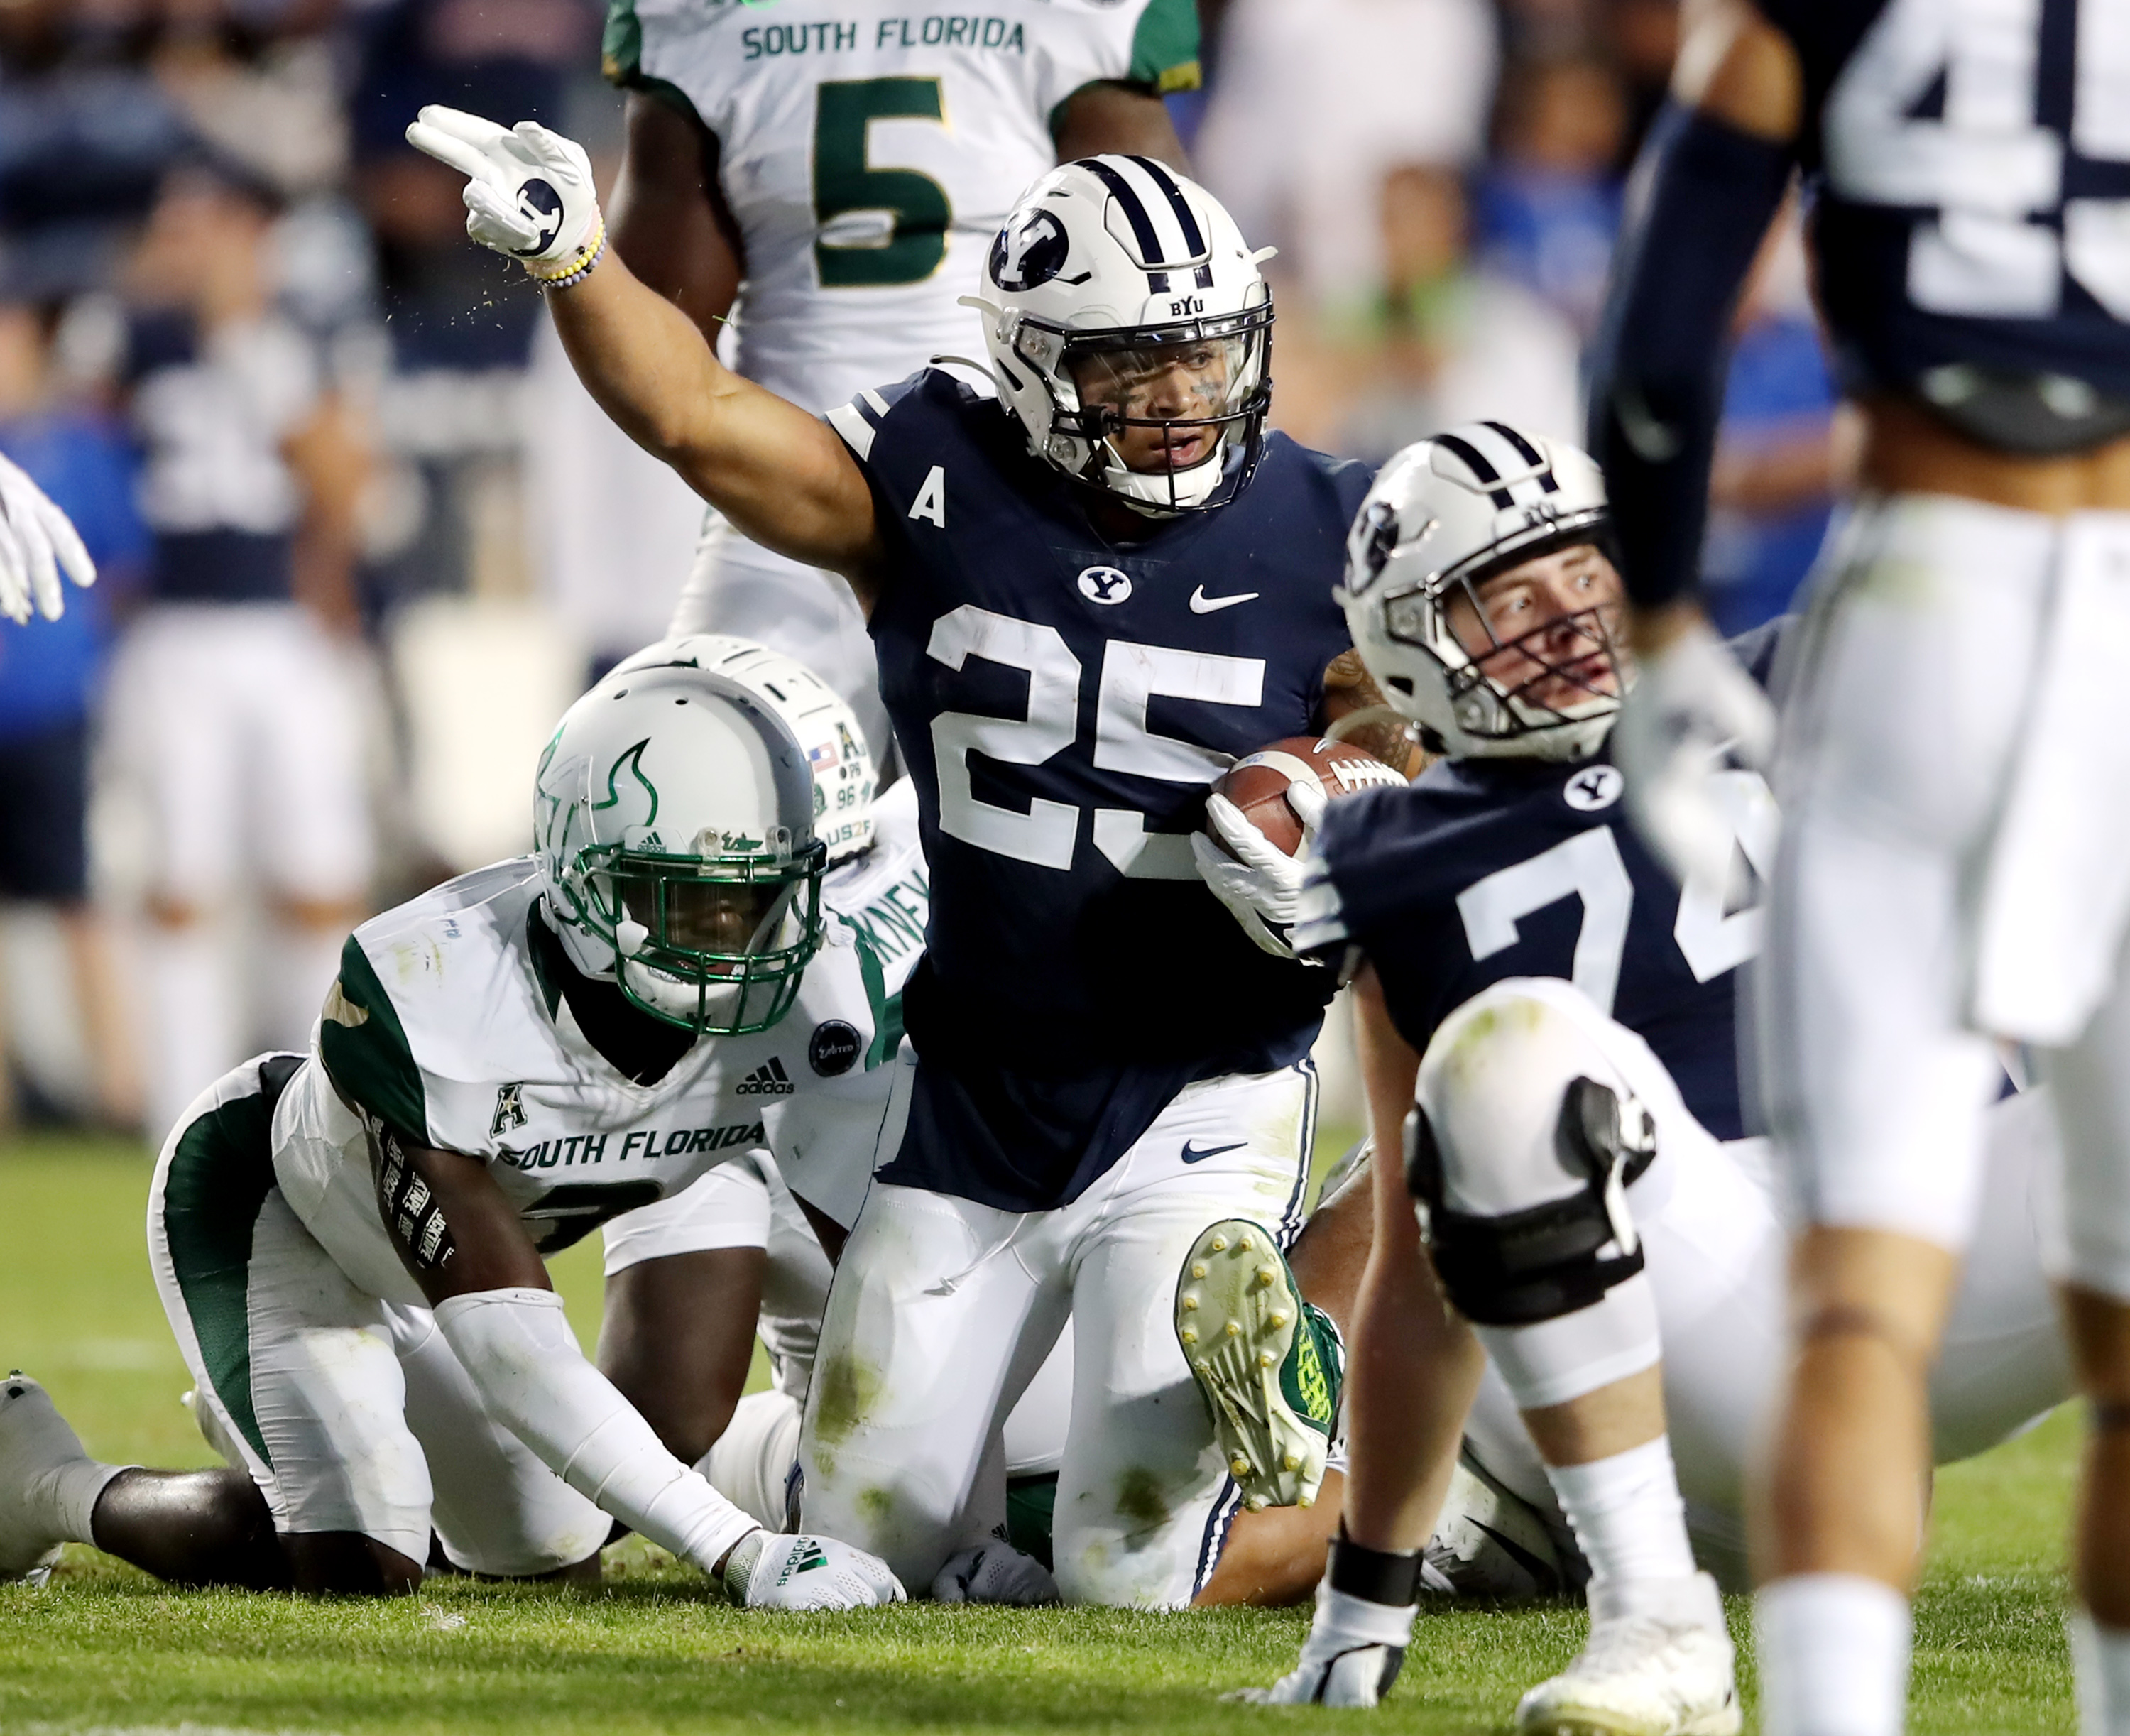 Brigham Young Cougars running back Tyler Allgeier (25) motions first down after a run as BYU and USF play a college football game.